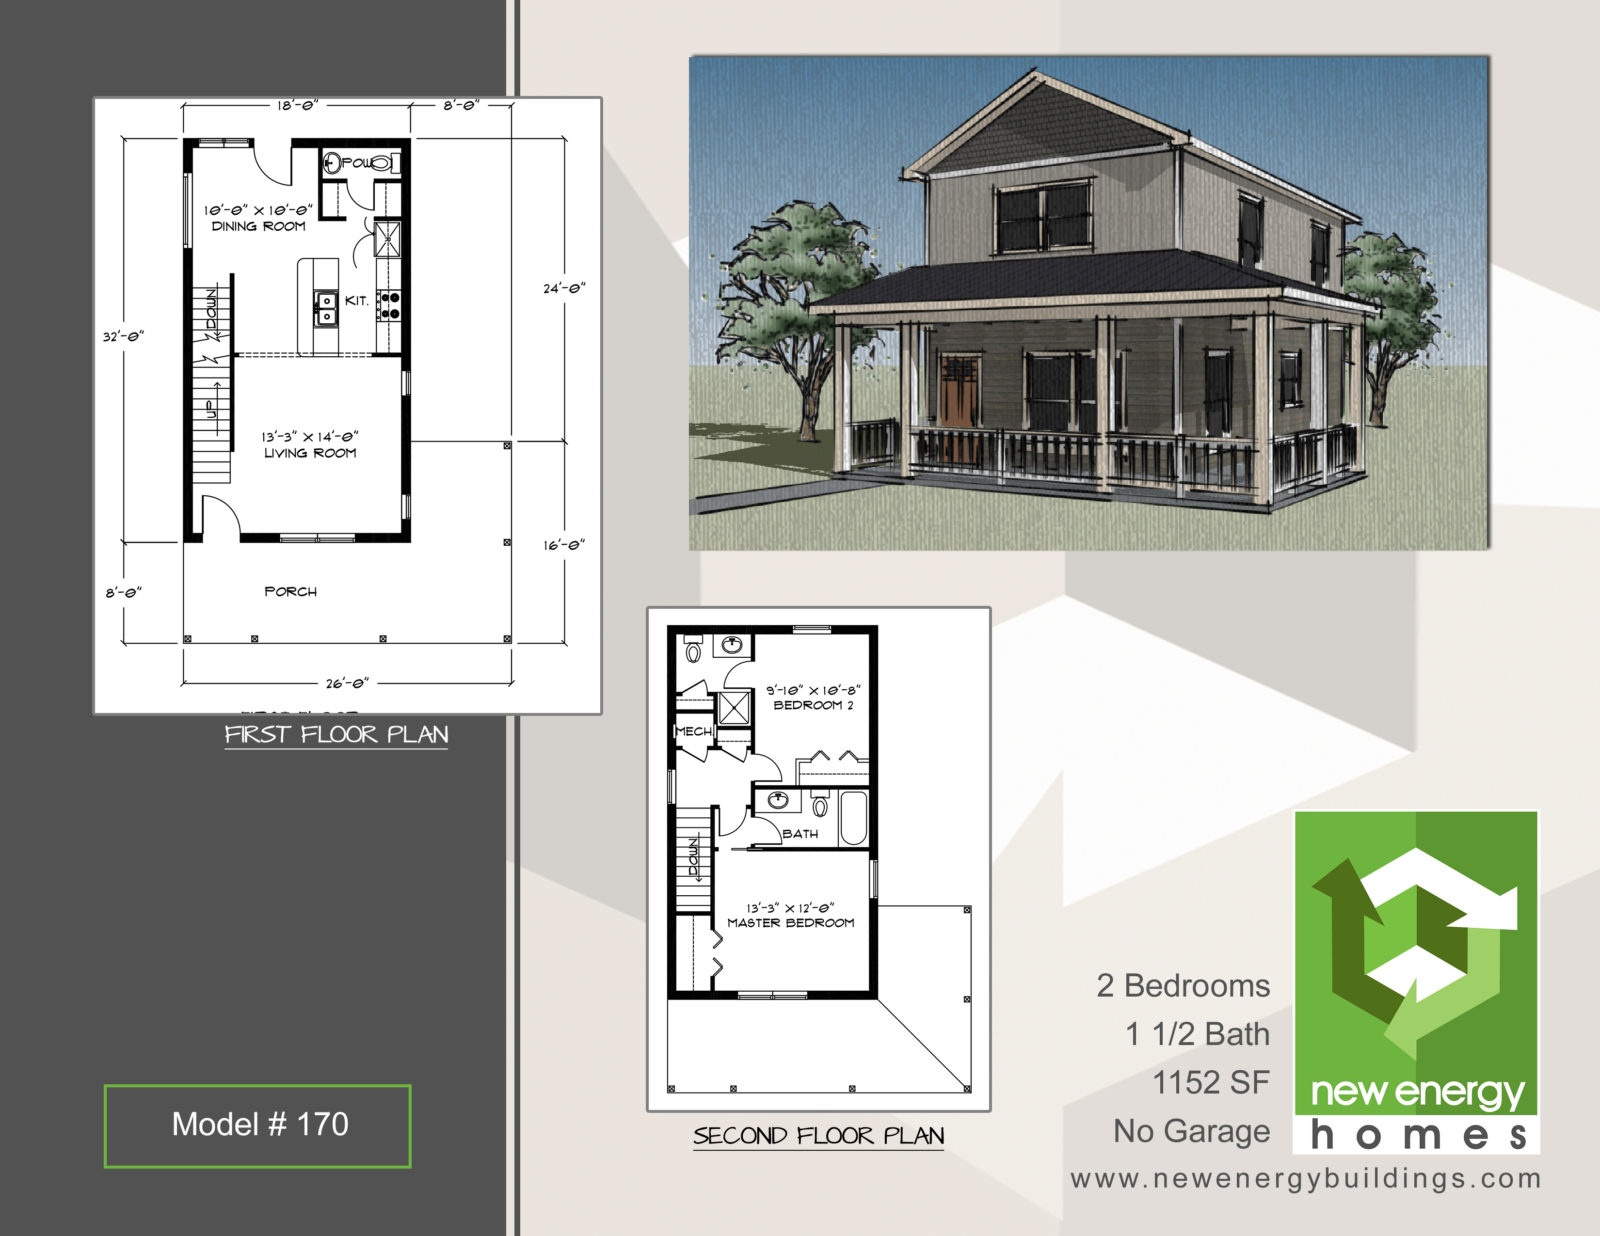 Two story farm house neh model 170 new energy homes for Two story model homes